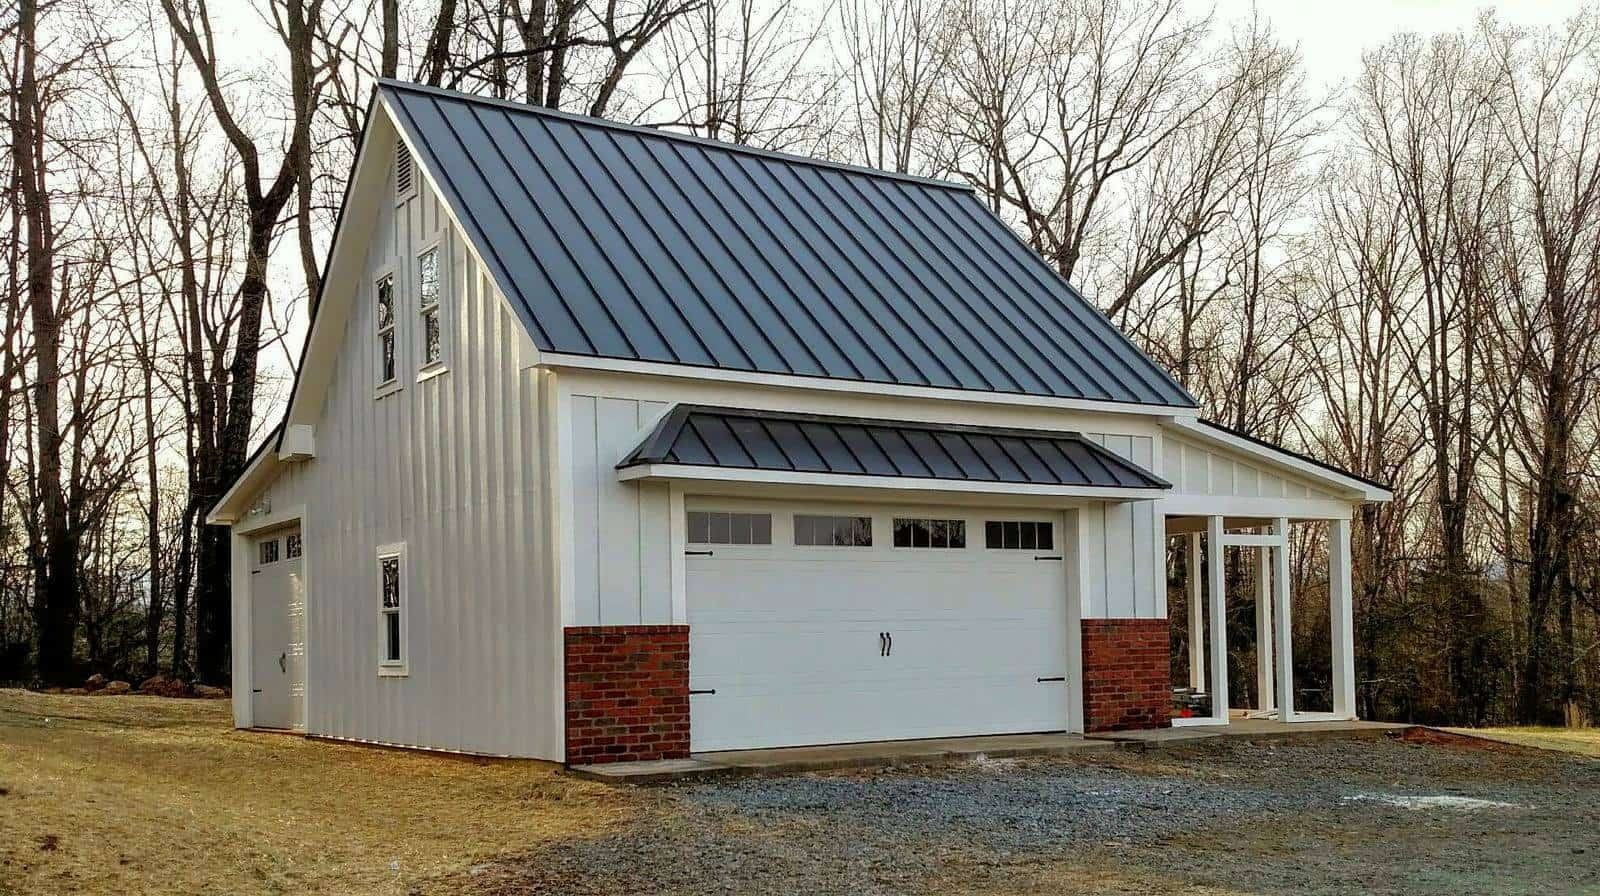 Cost to build a house in virginia home design ideas for Cost to build a pole barn home